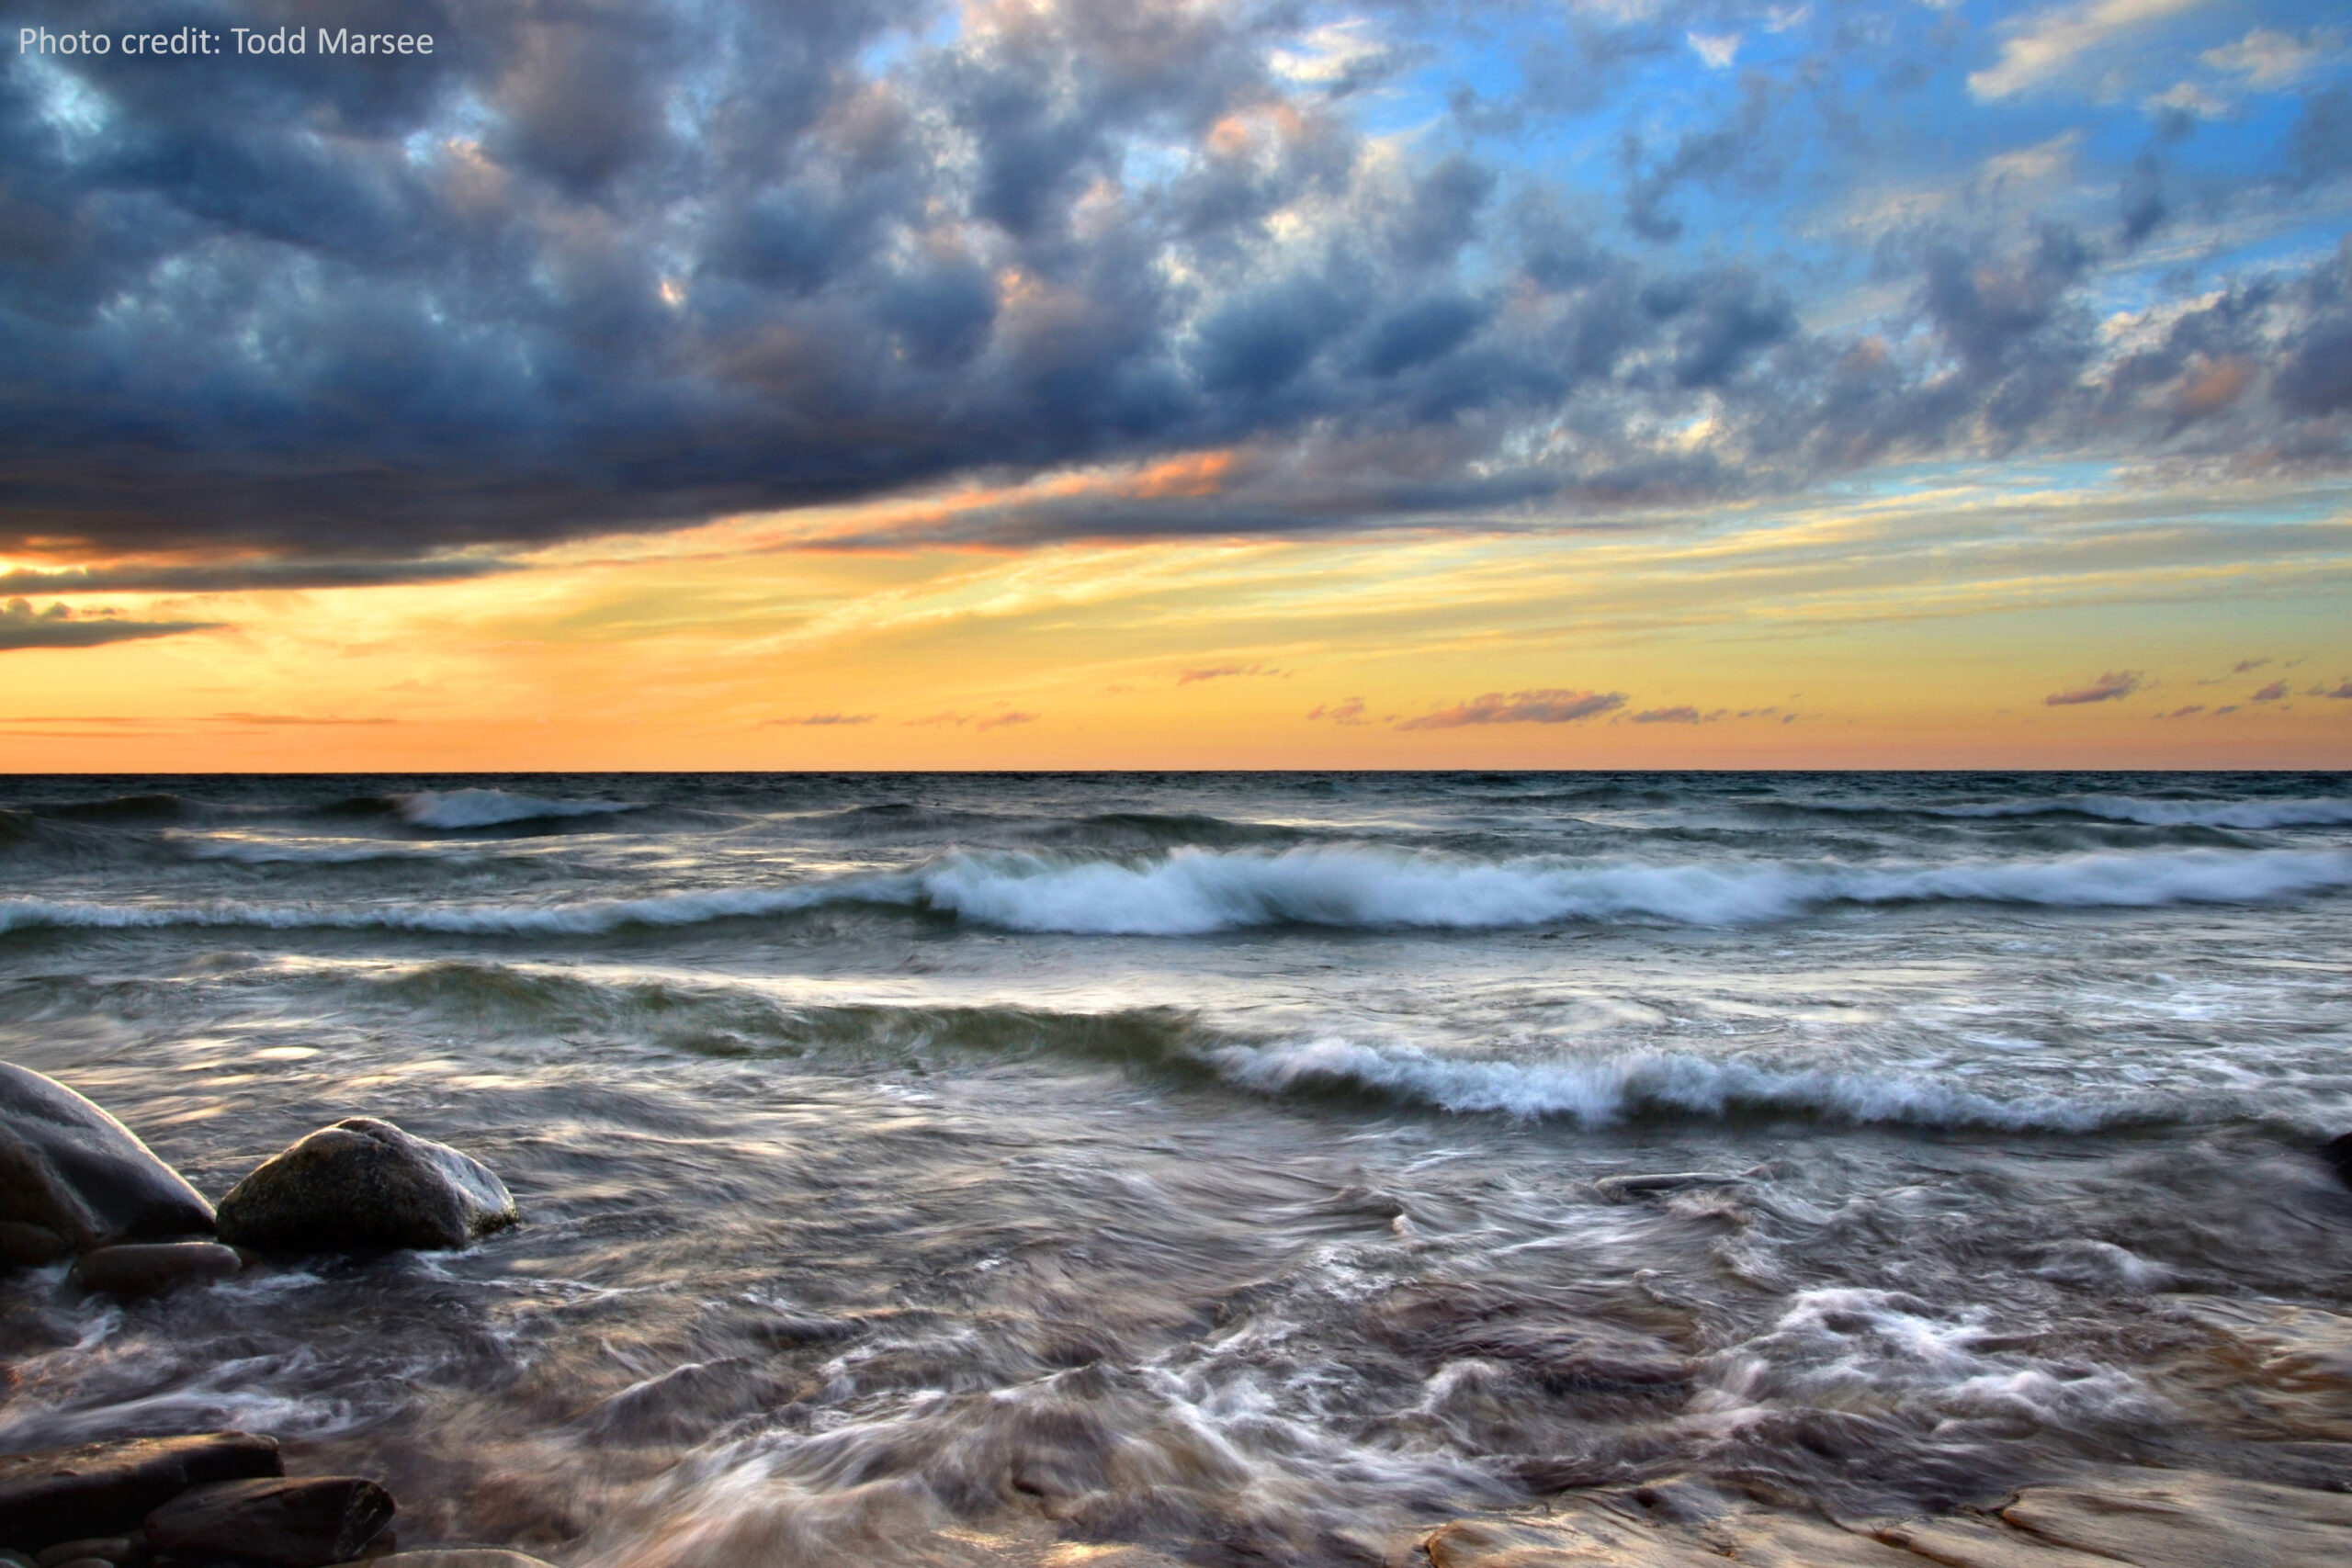 Low waves roiling and crashing on the rocky lakeshore under a sky painted orange by sunset and speckled with clouds.